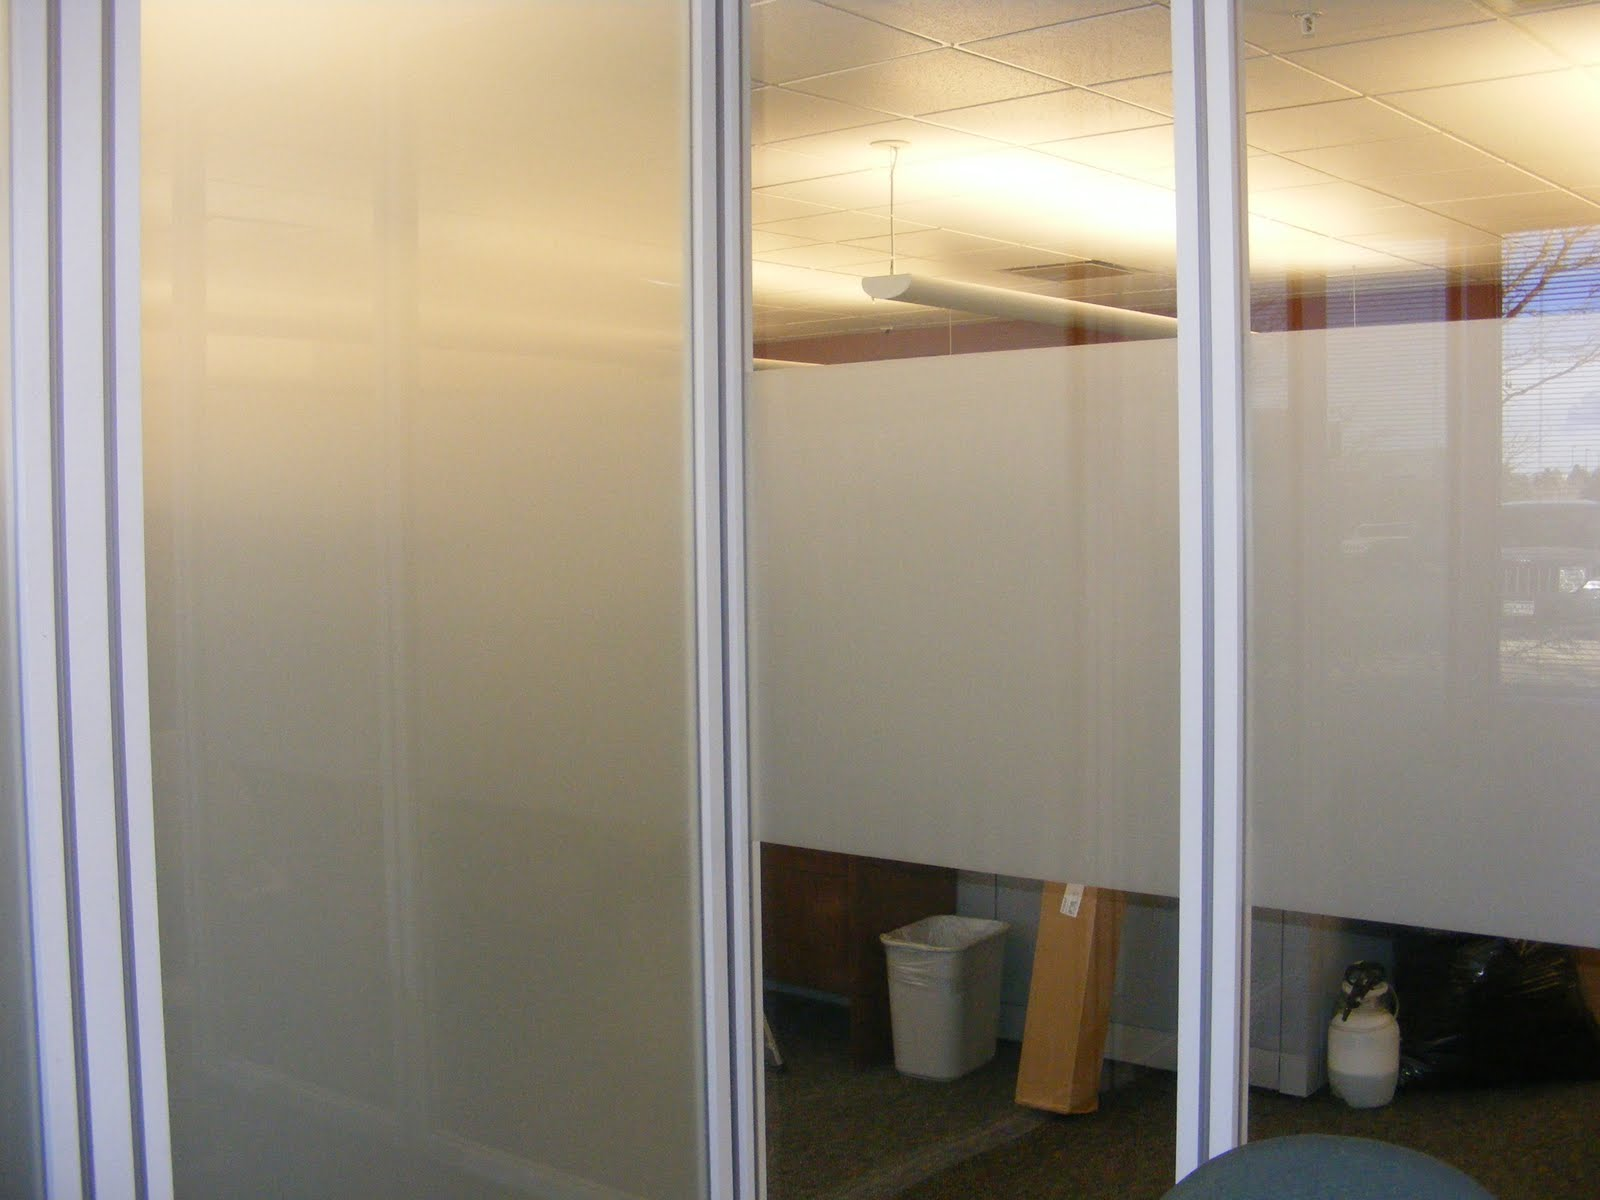 frosted window film provides privacy yet keeps the light - Frosted Window Film